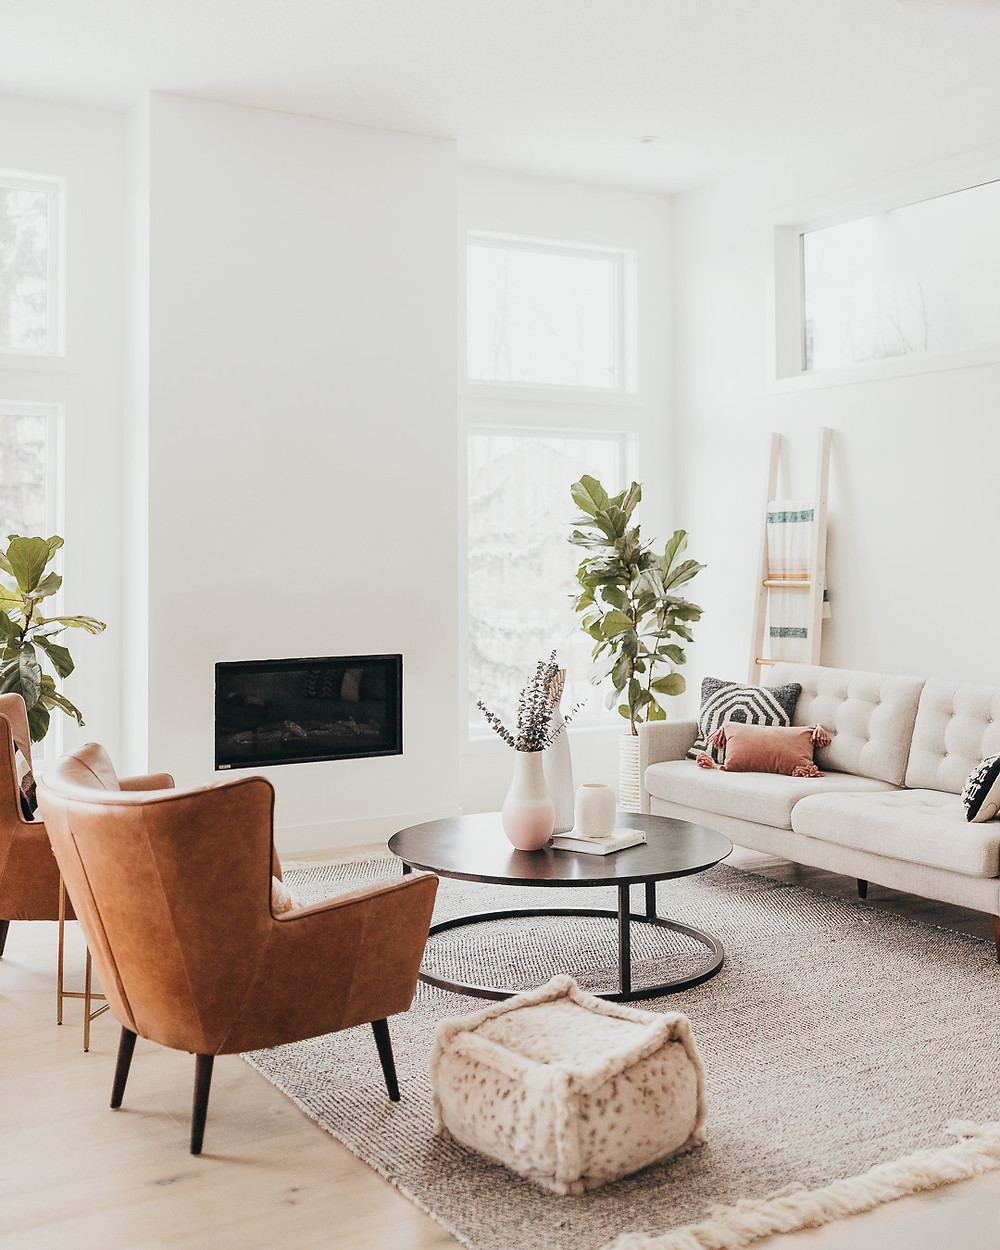 A white Scandinavian living room features a natural light wood floor with a natural fibre striped rug, metal round metal coffee table, two brown leather chairs, fur pouf, light sofa with pillows, blanket ladder, two fiddle leaf fig plants and a linear fireplace.